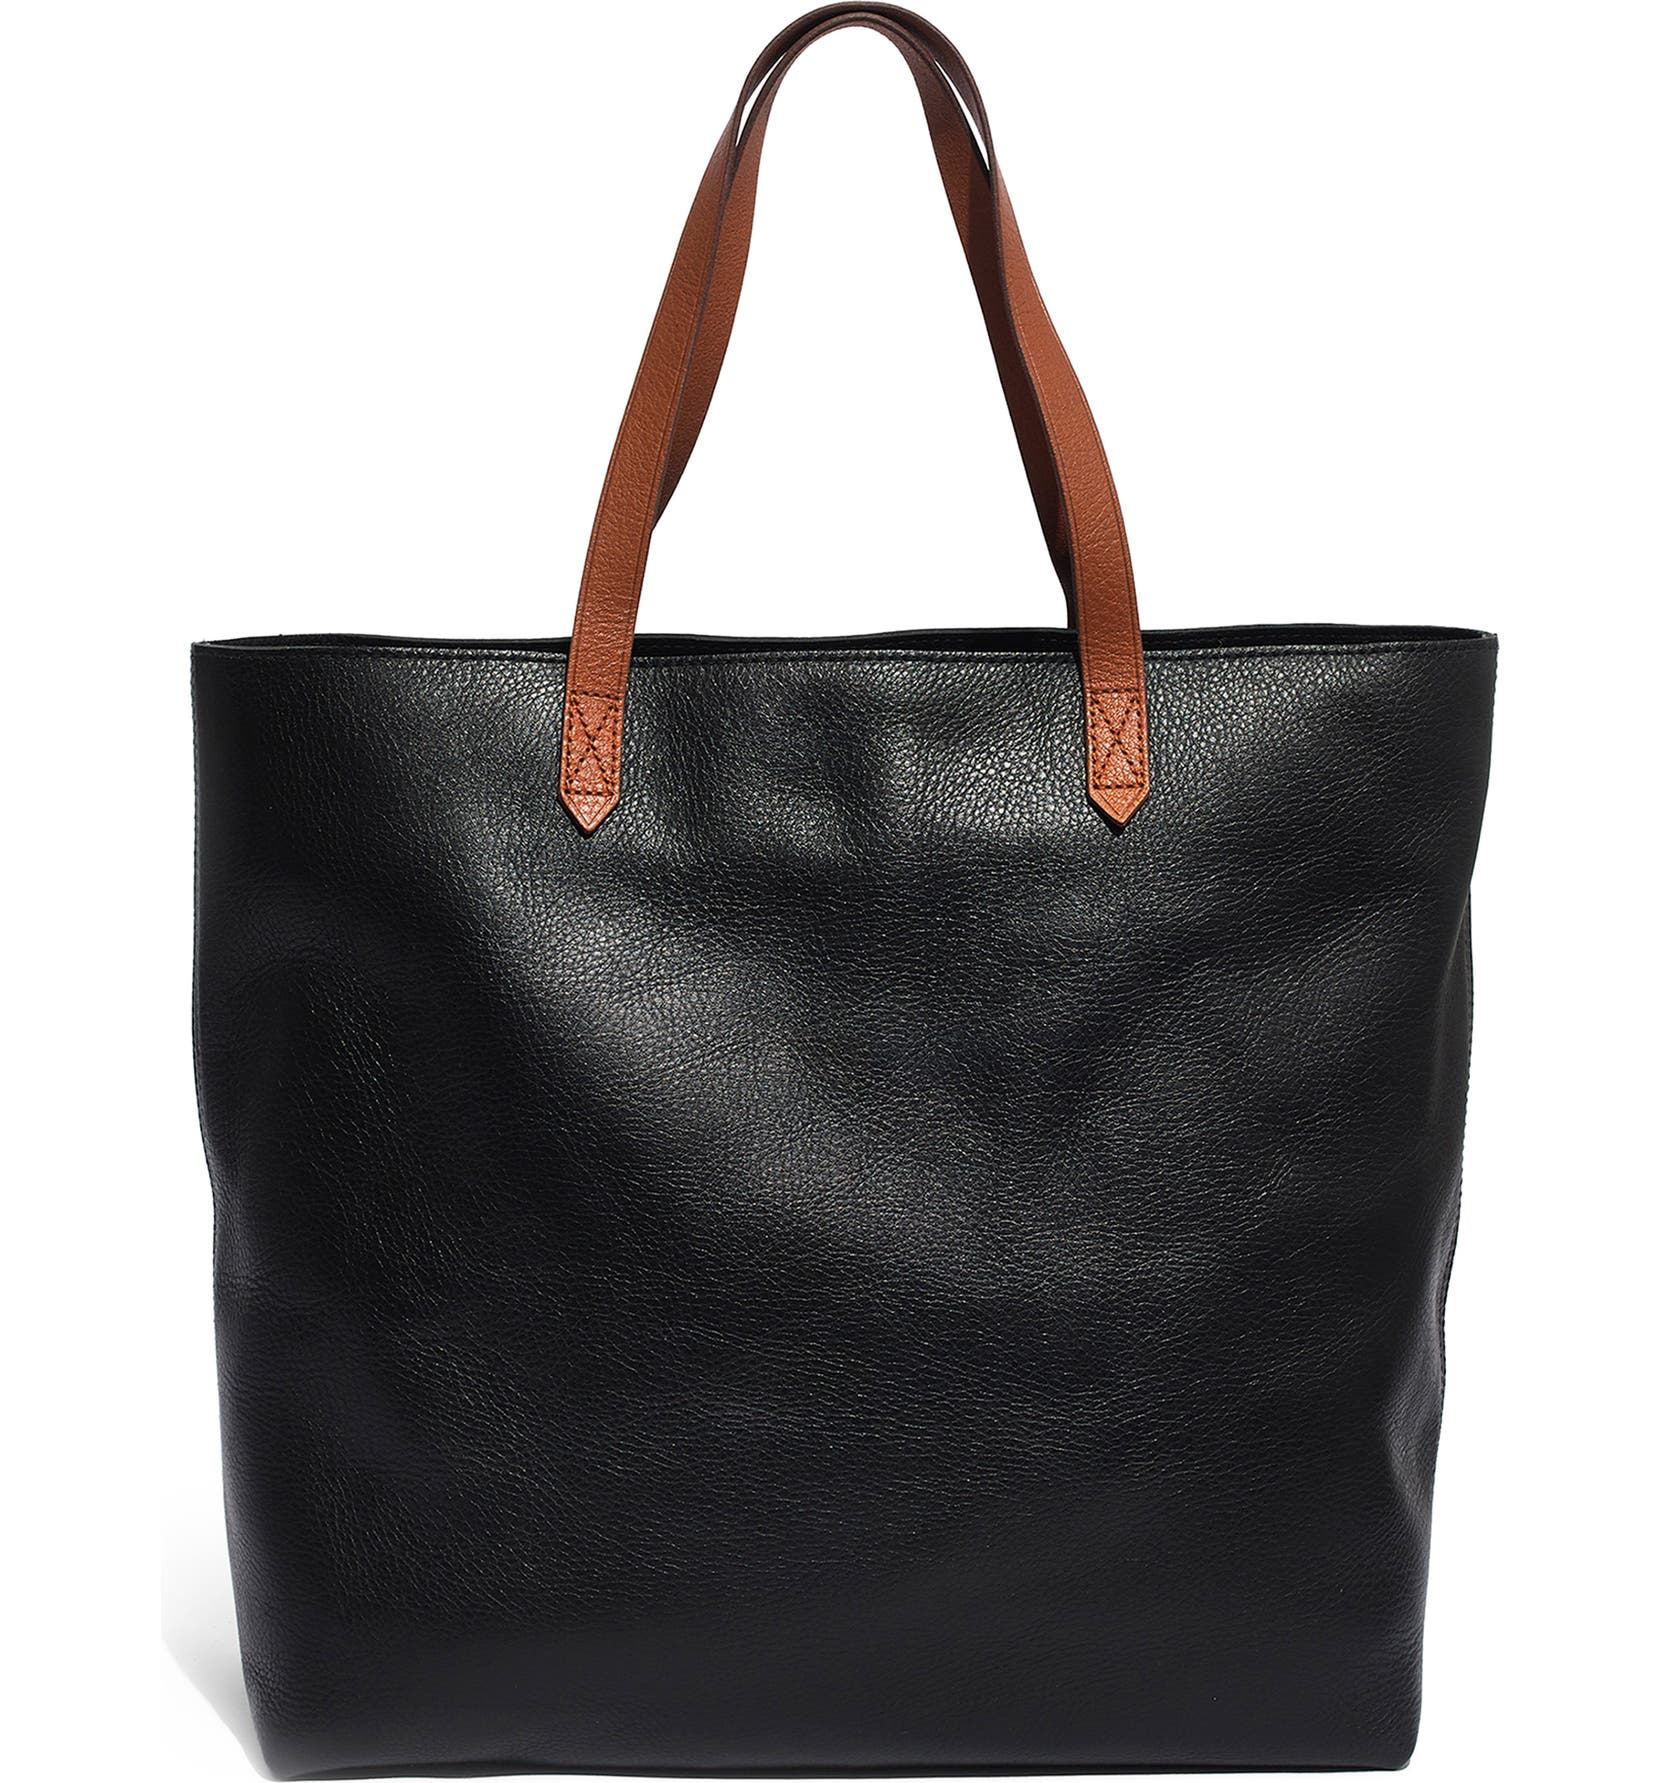 Zip Top Transport Leather Tote